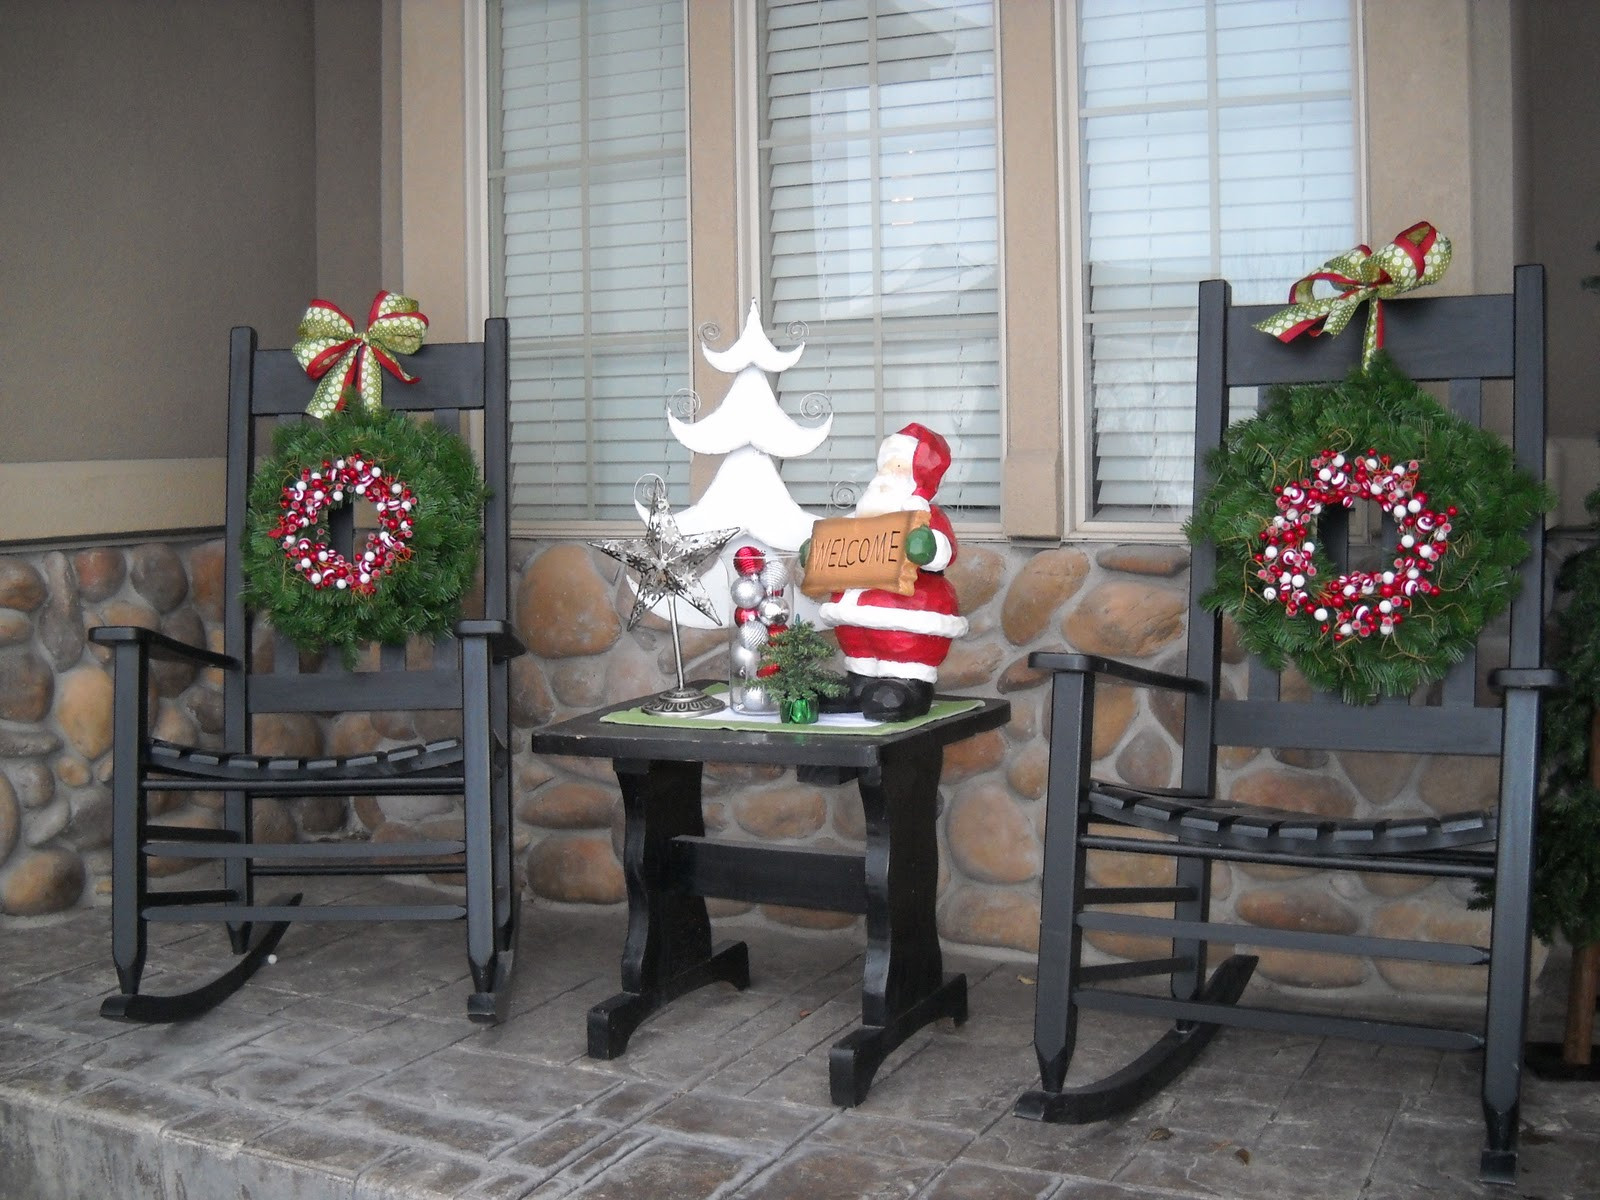 Decorating Porch For Christmas  Do it Yourself Duo Front porch decor continued